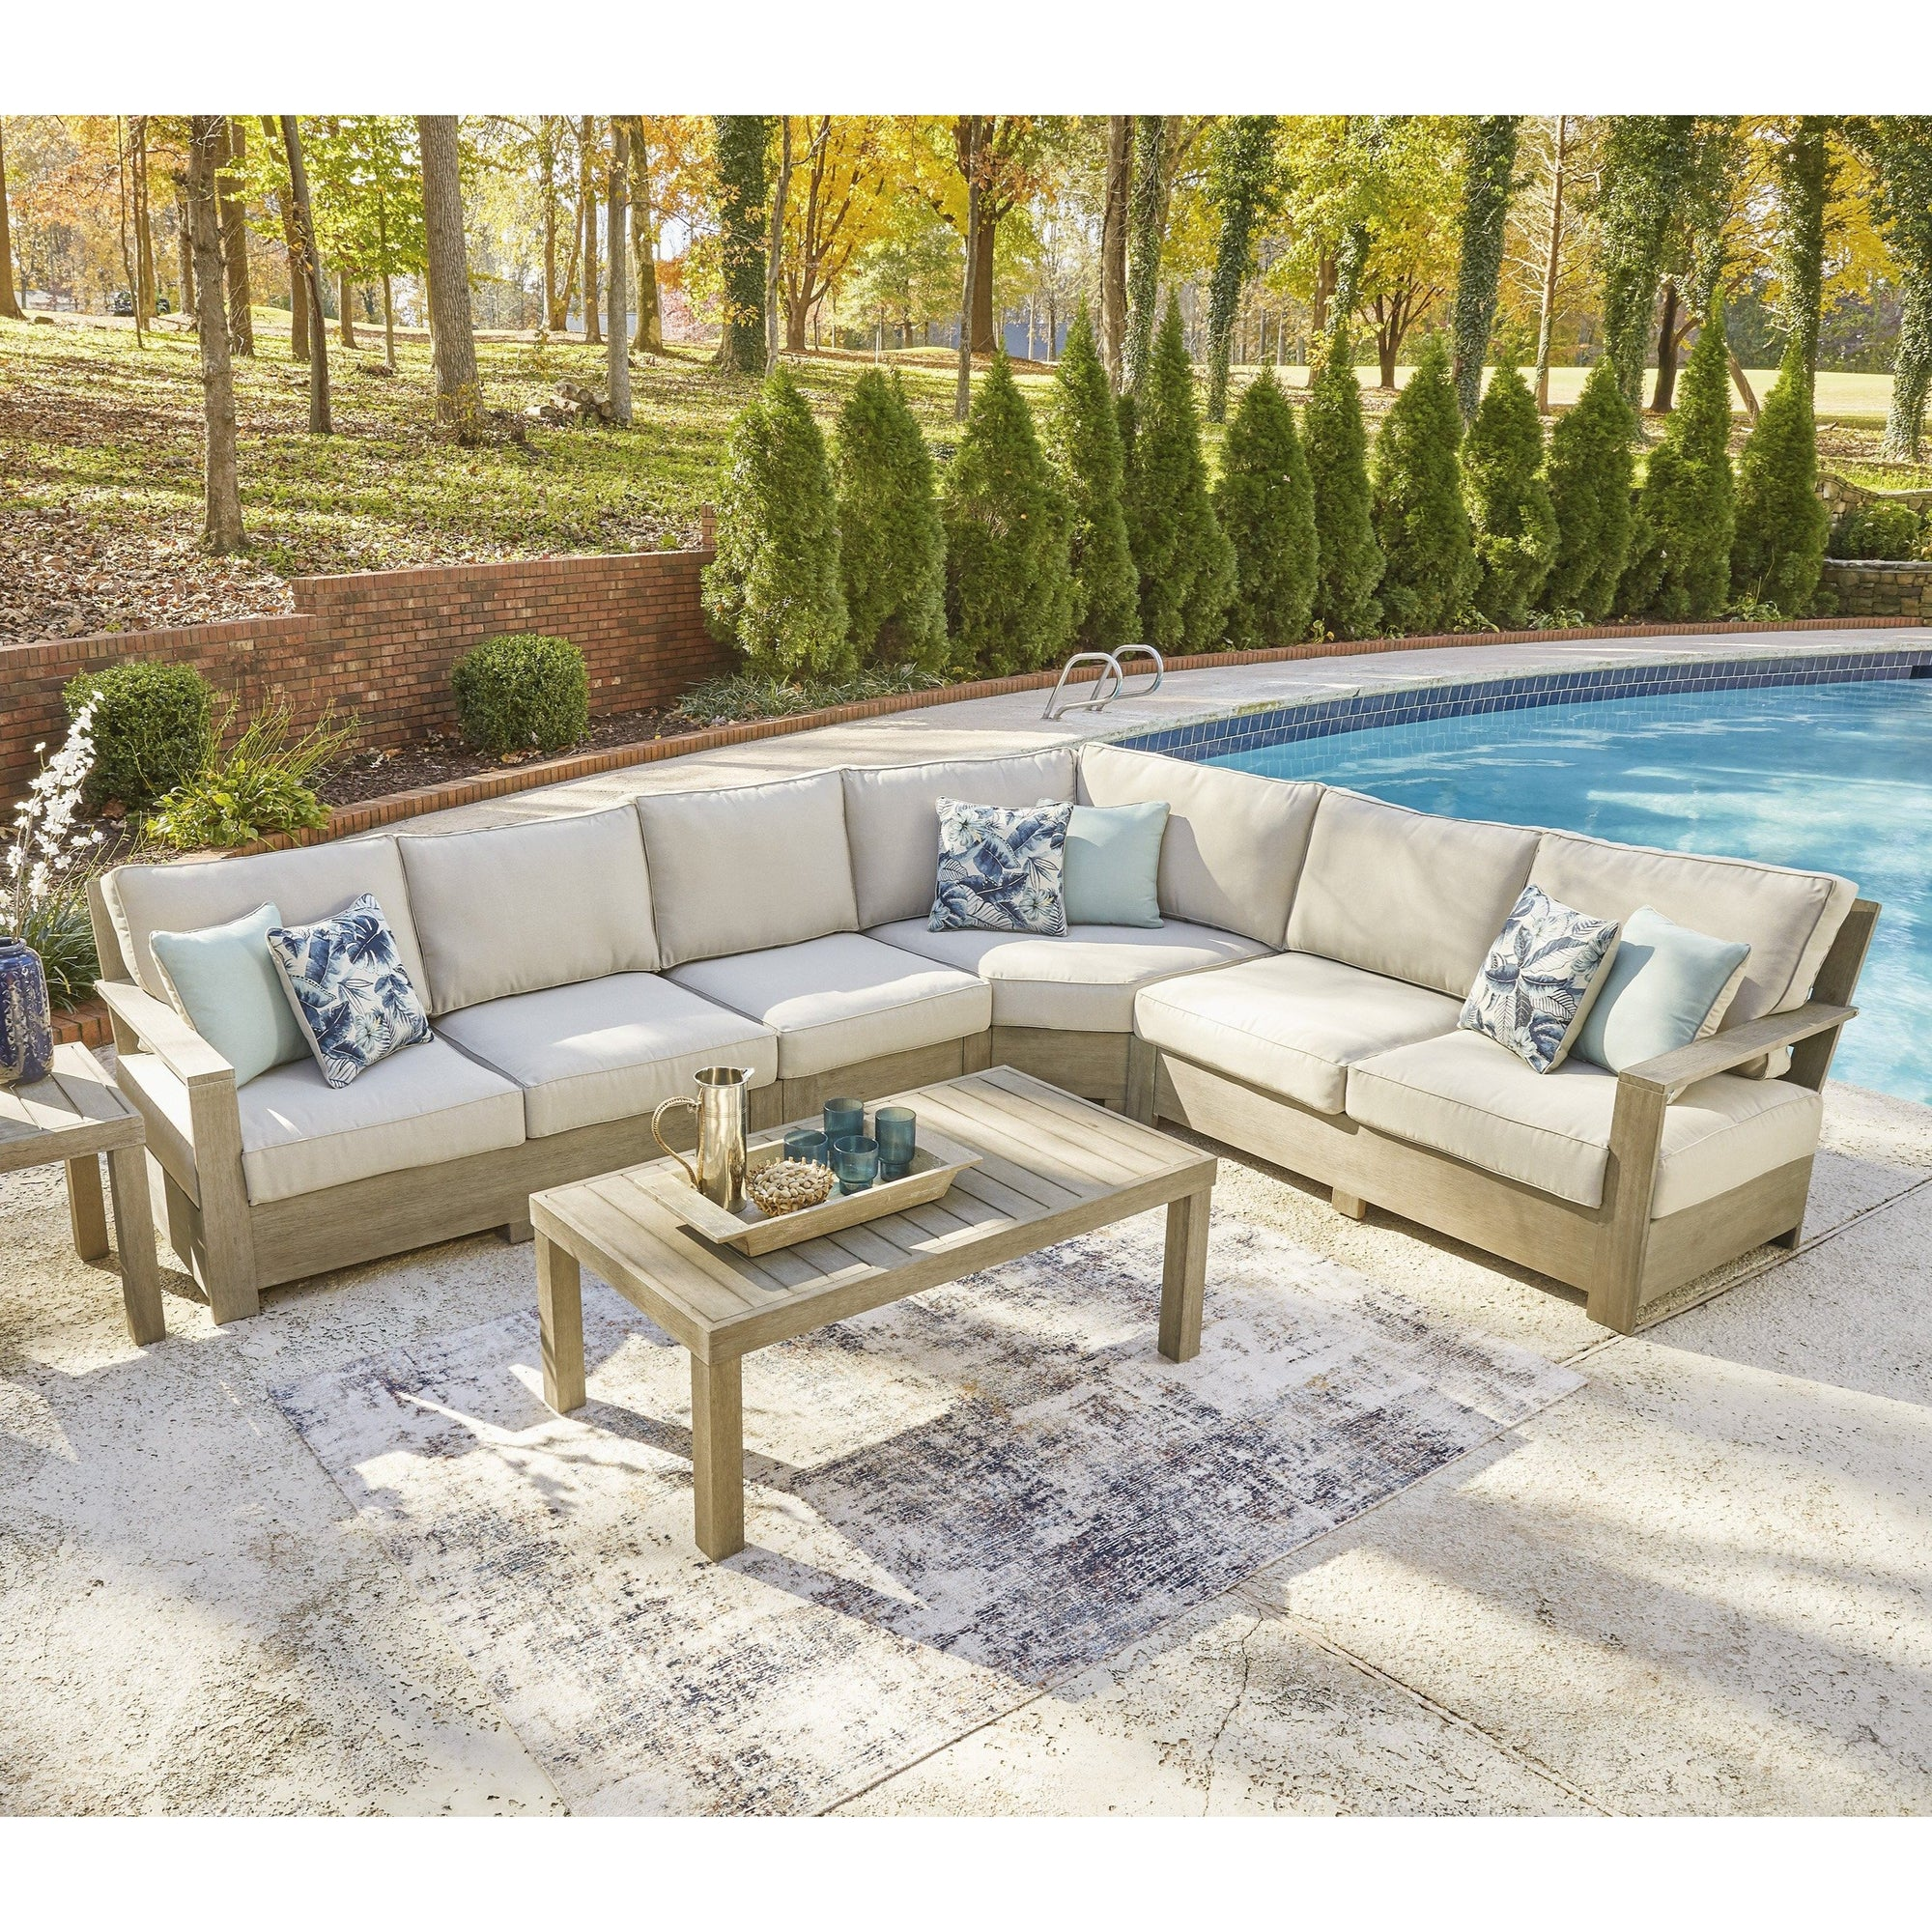 Dune Walk Taupe 4-Piece Outdoor Sectional